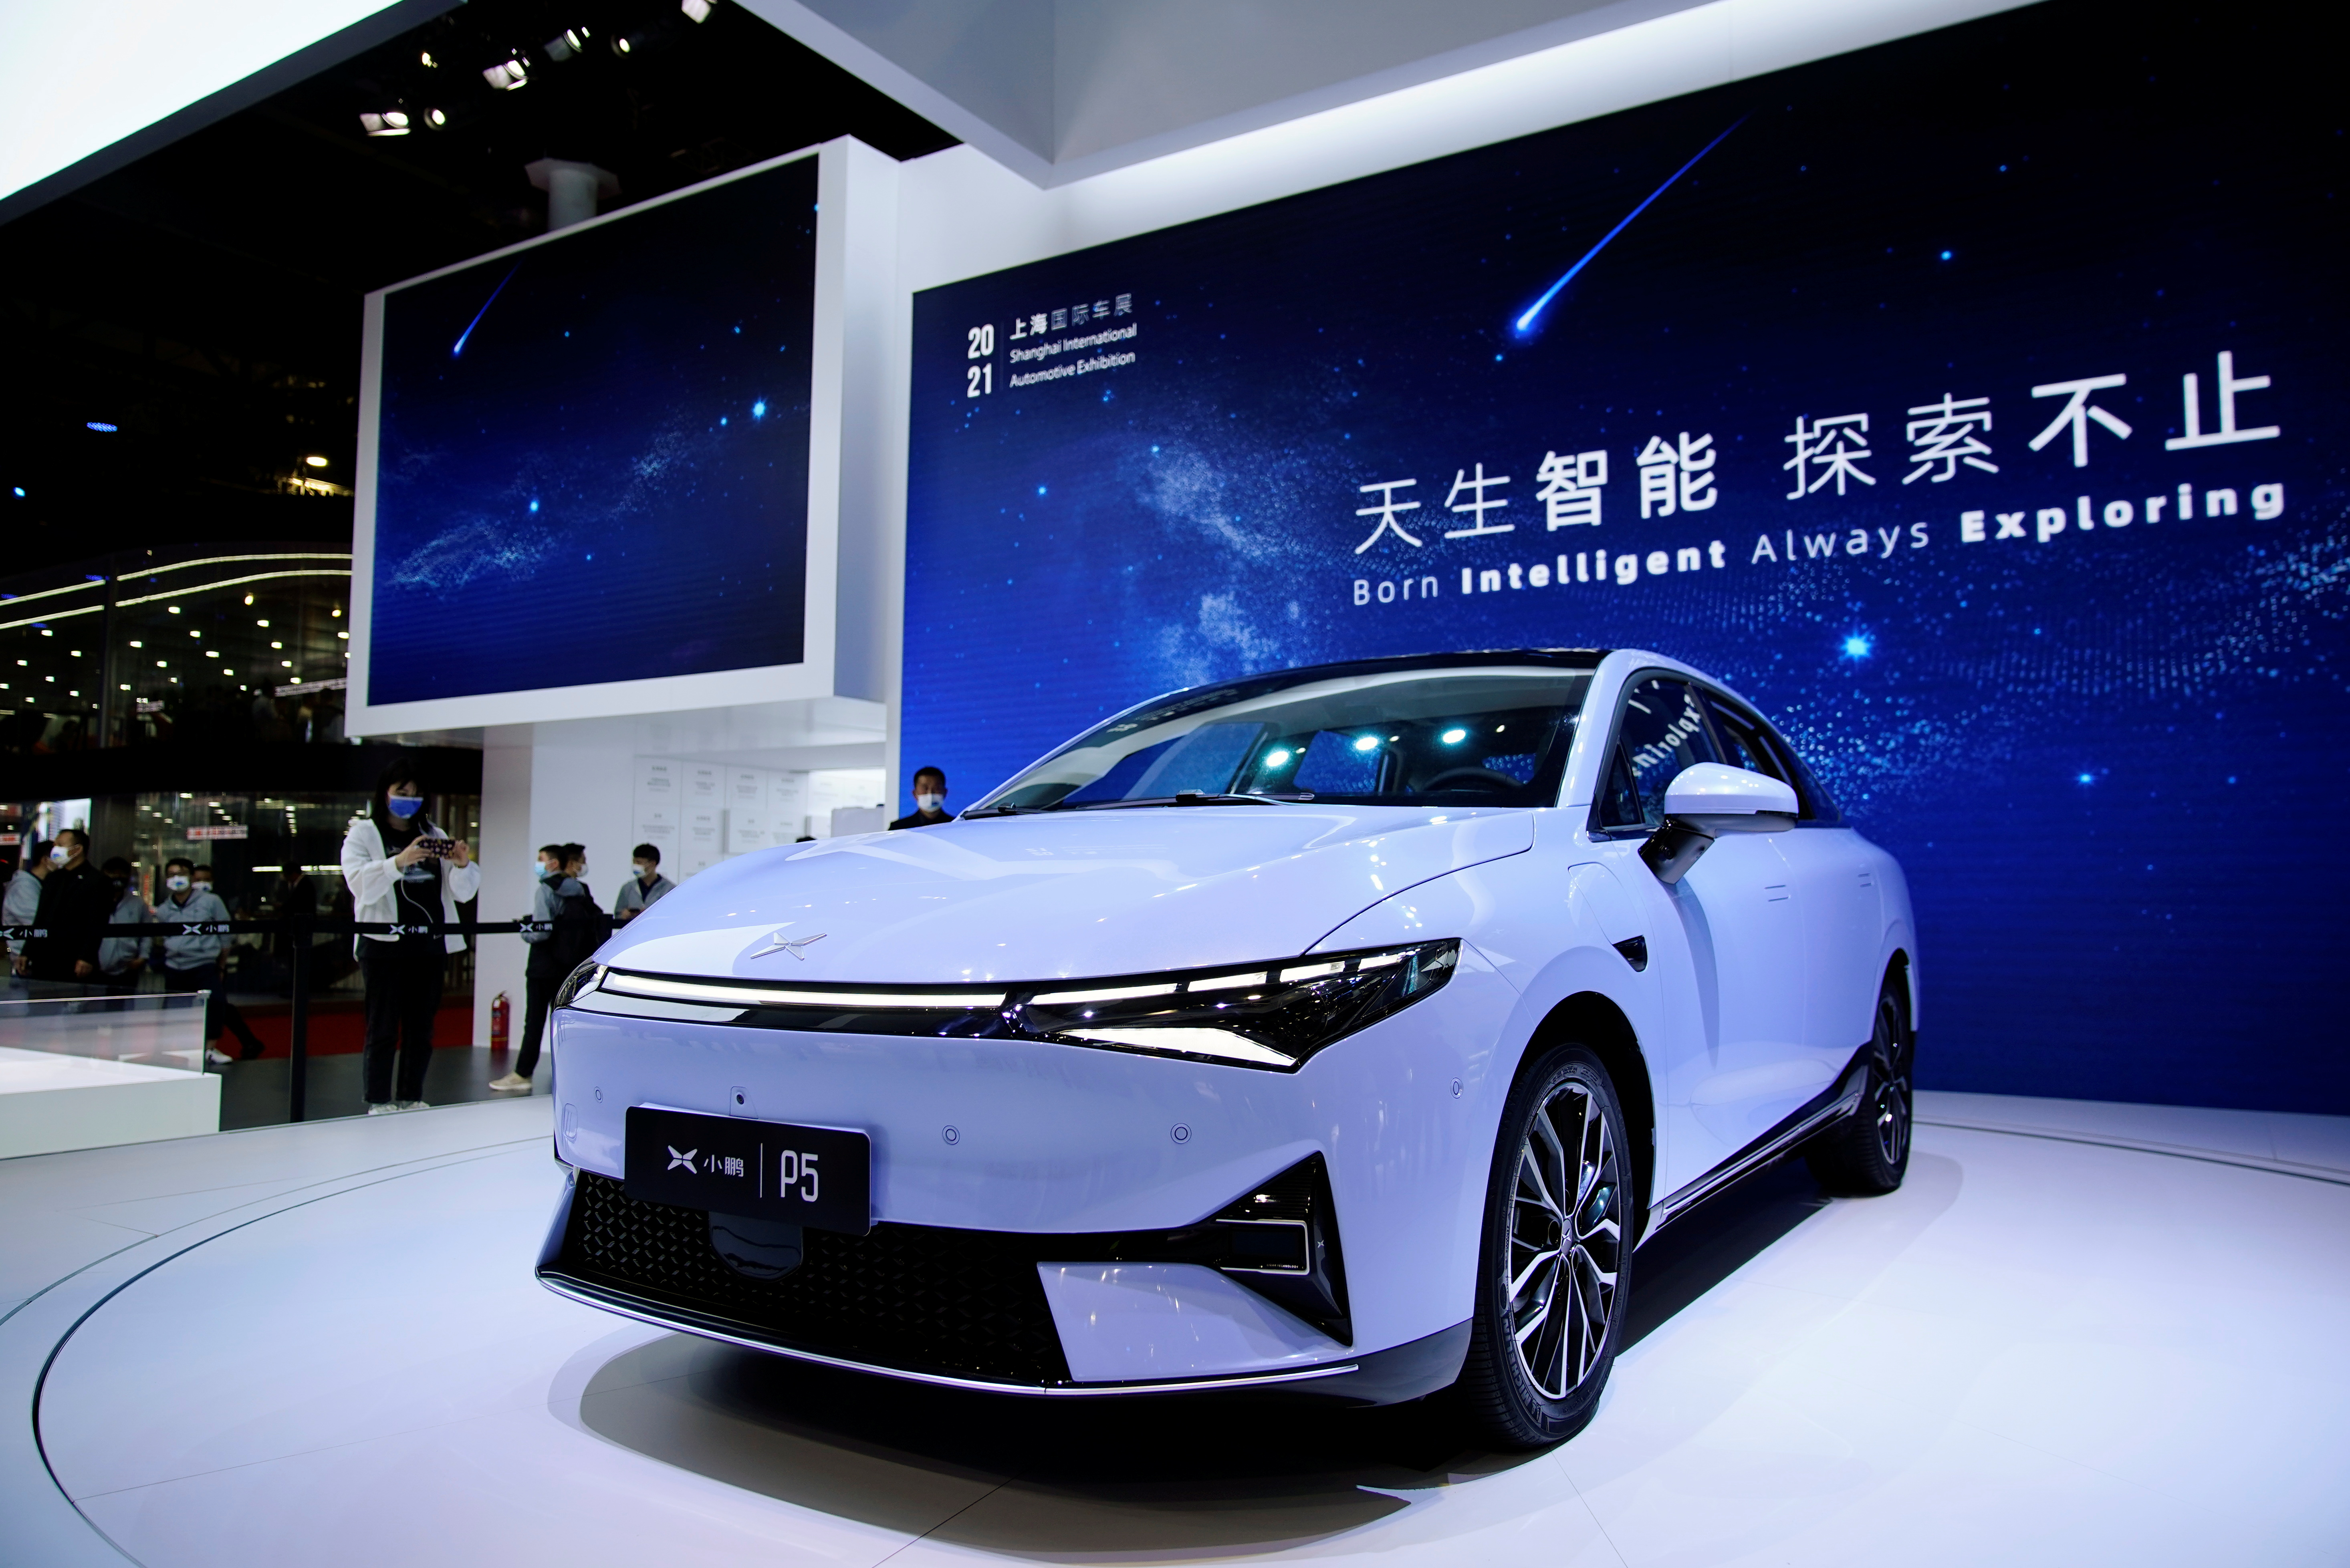 An Xpeng P5 electric vehicle (EV) is seen displayed during a media day for the Auto Shanghai show in Shanghai, China April 19, 2021. REUTERS/Aly Song